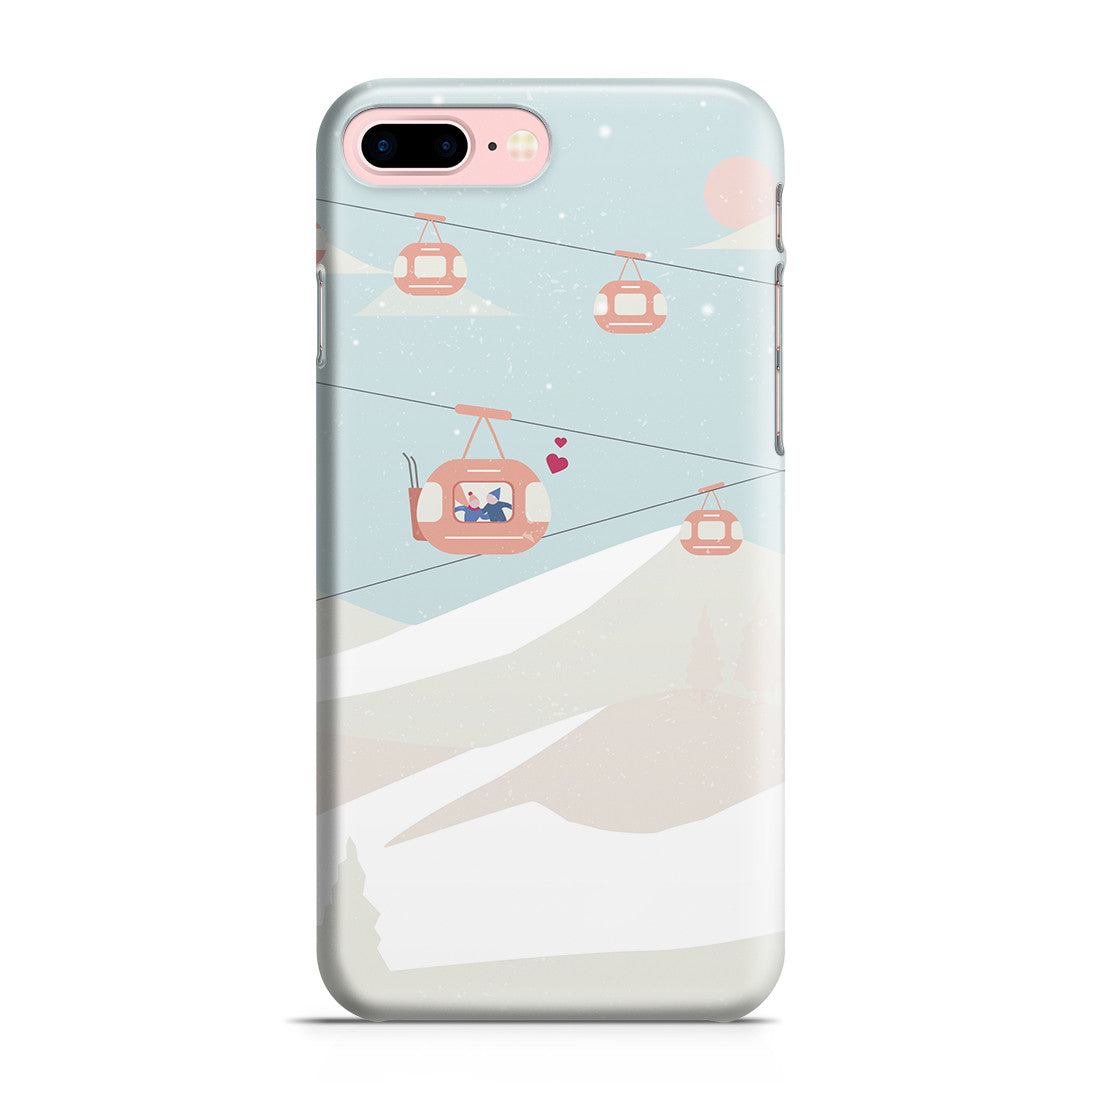 size 40 70624 d84e3 iPhone 7 Plus Case - The Most Beautiful View Is One Shared